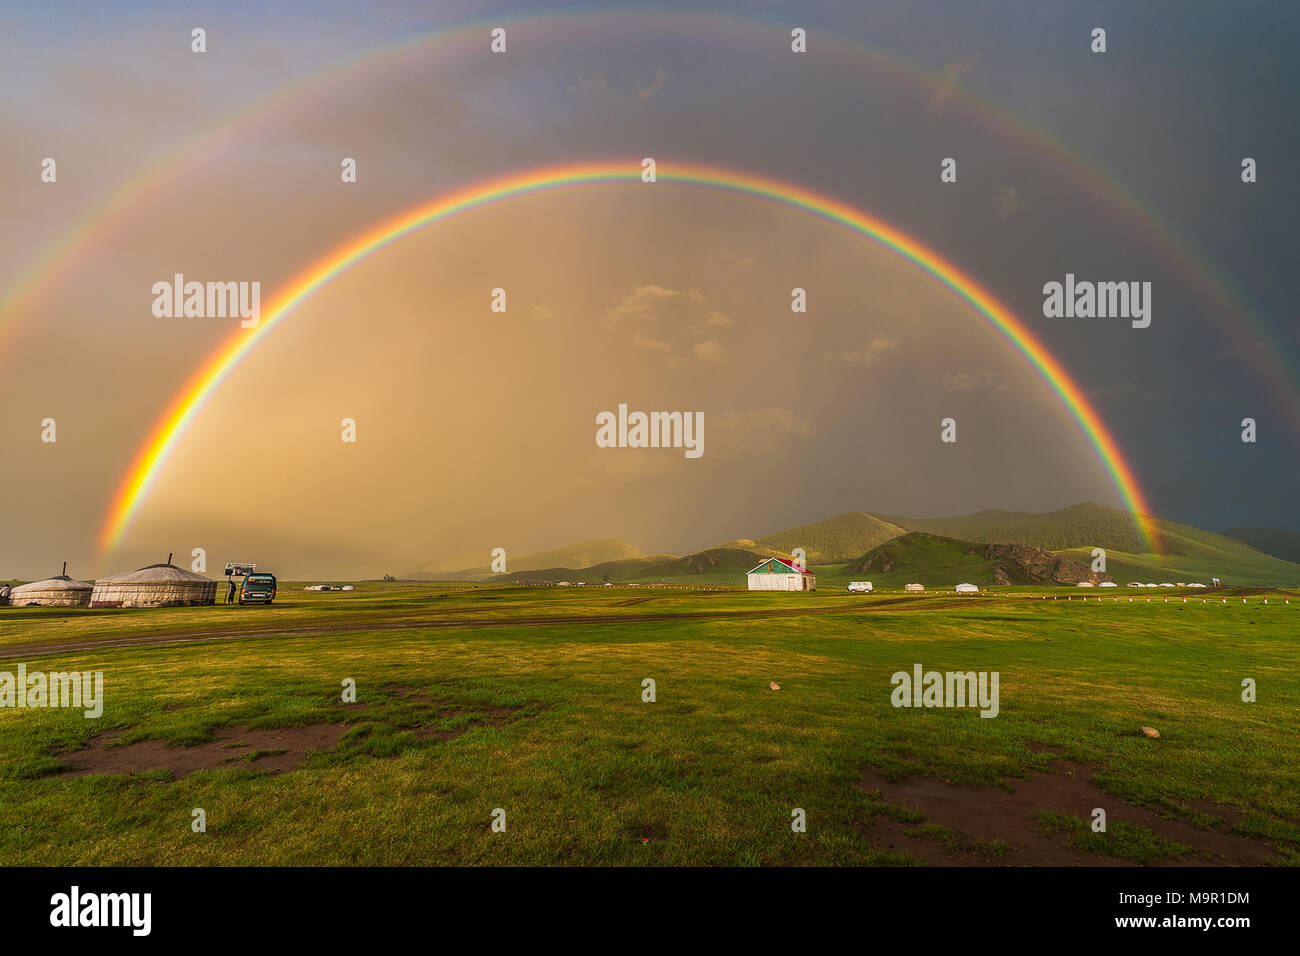 Double rainbow above nomad yurts in a green landscape, Mongolia - Stock Image